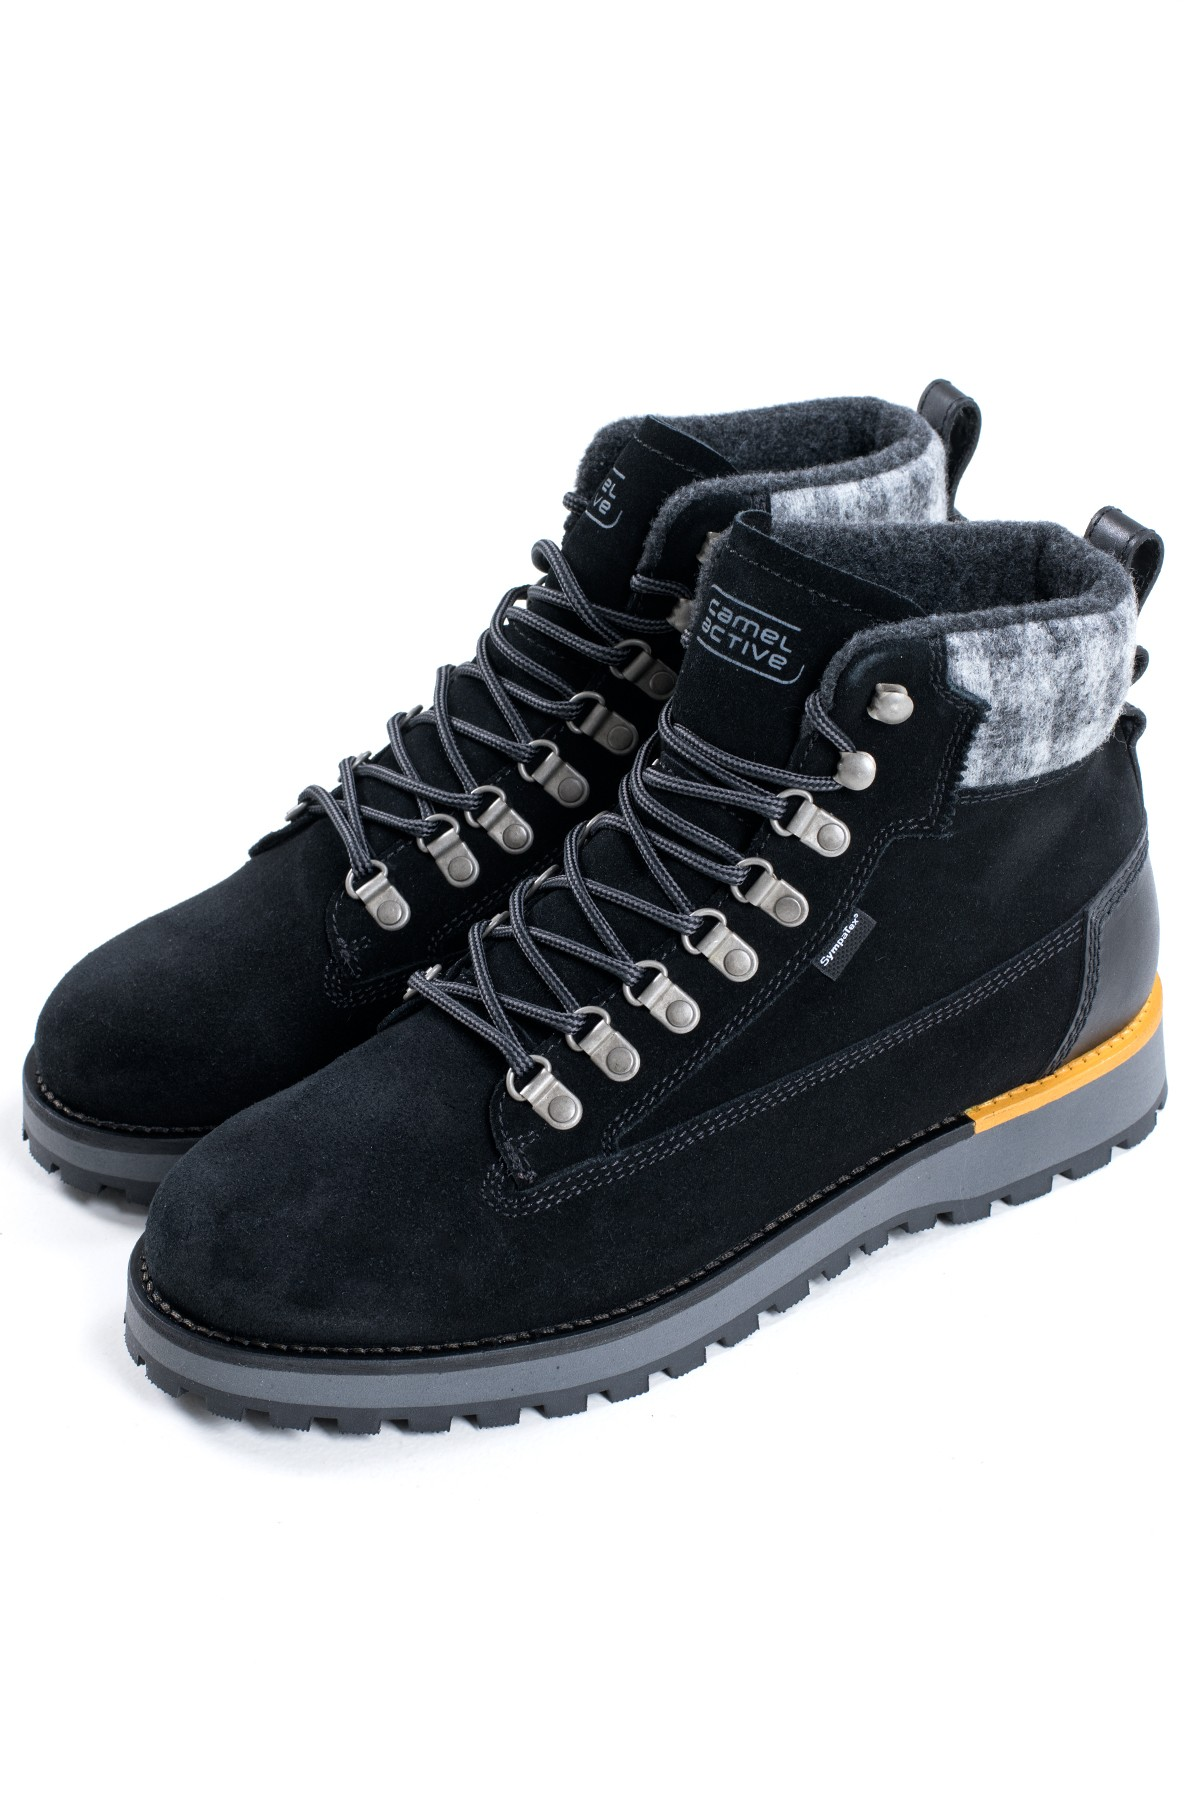 Boots FASHION MIX SNEAKER-full-1